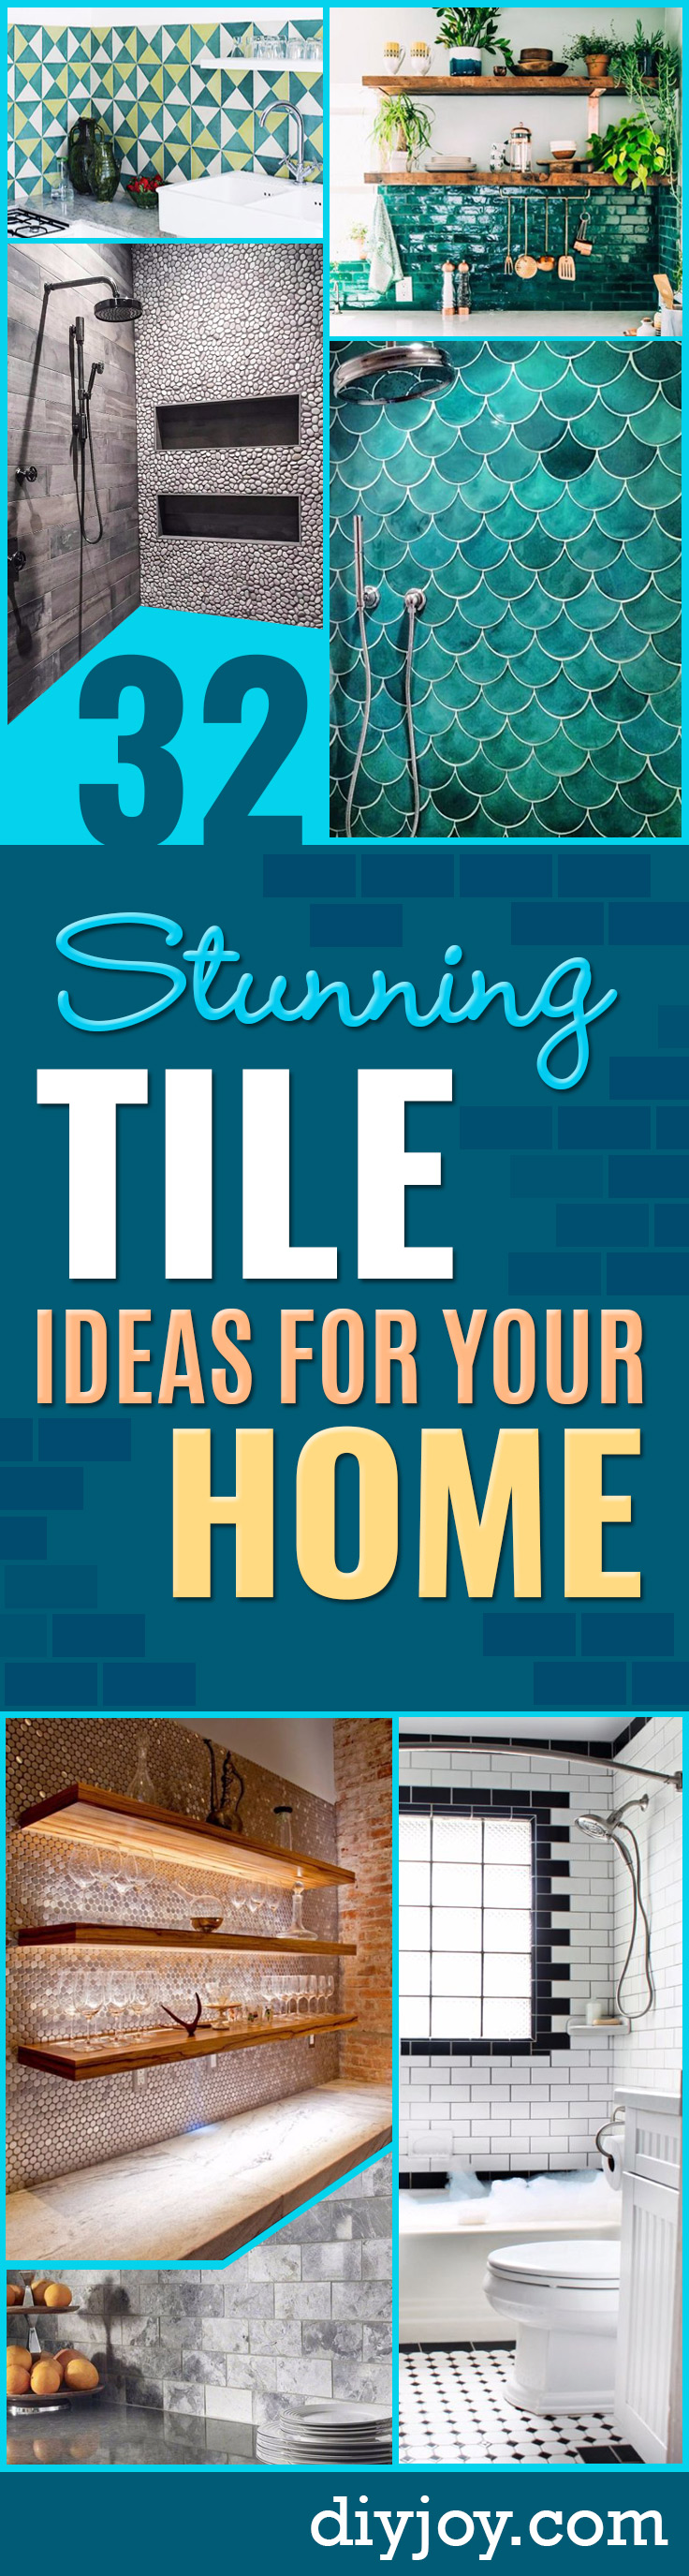 DIY Tile Ideas - Creative Crafts for Bathroom, Kitchen, Living Room, and Fireplace - Awesome Shower and Bathtub Ideas - Fun and Easy Home Decor Projects - How To Make Rustic Entryway Art